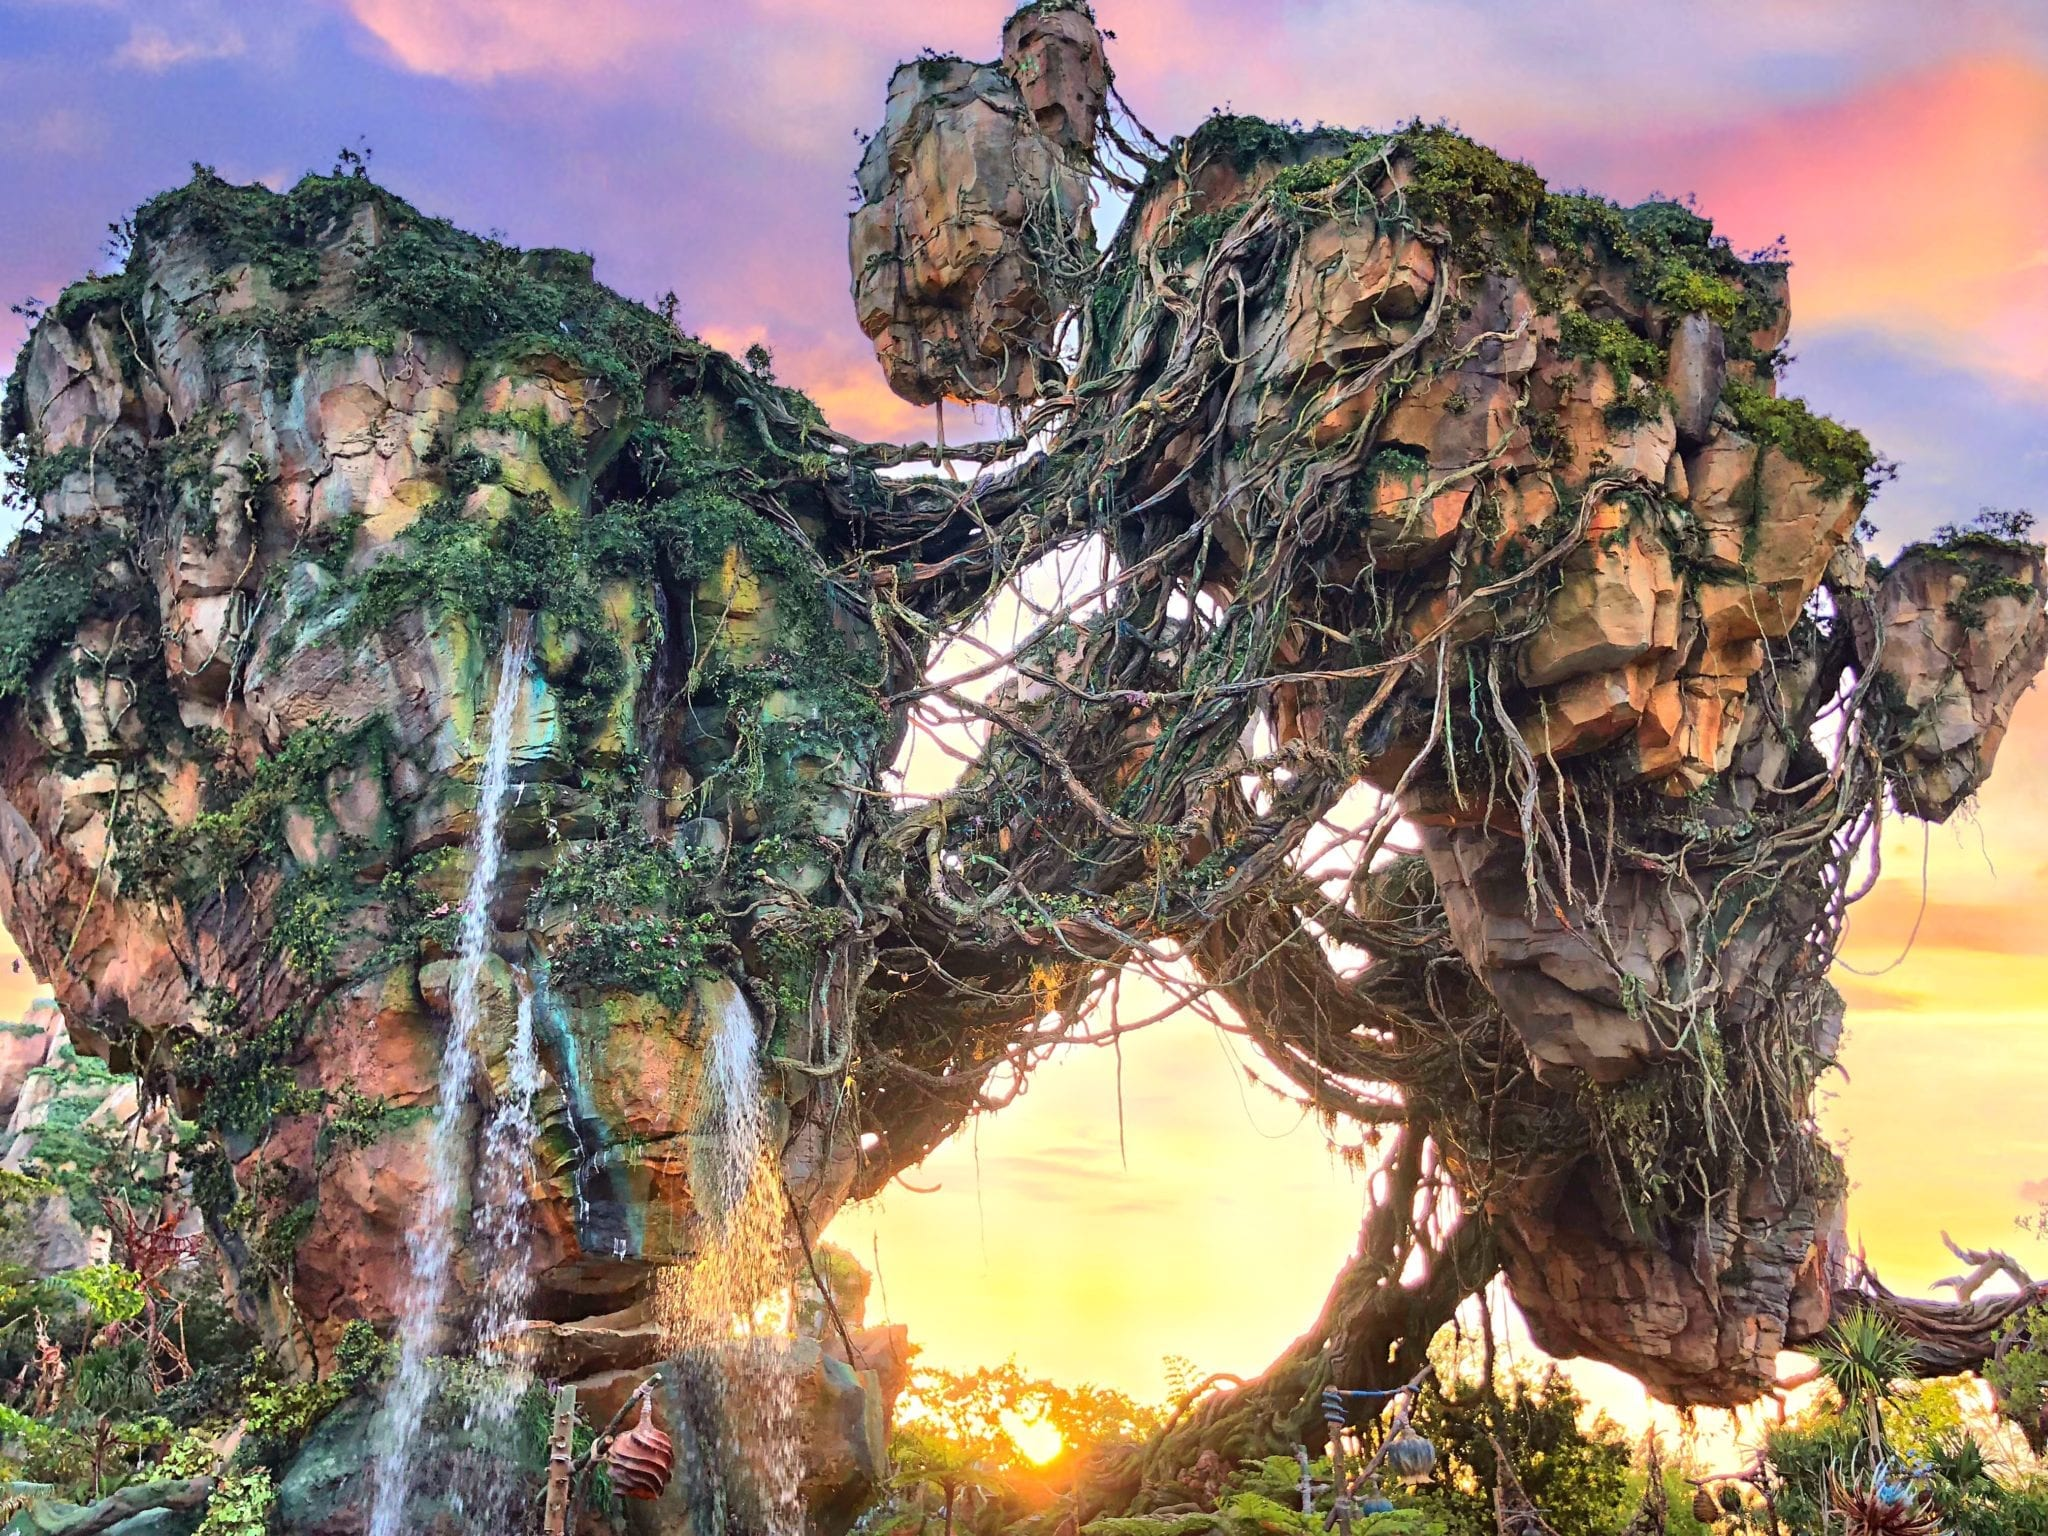 Avatar Flight of Passage Attraction Review